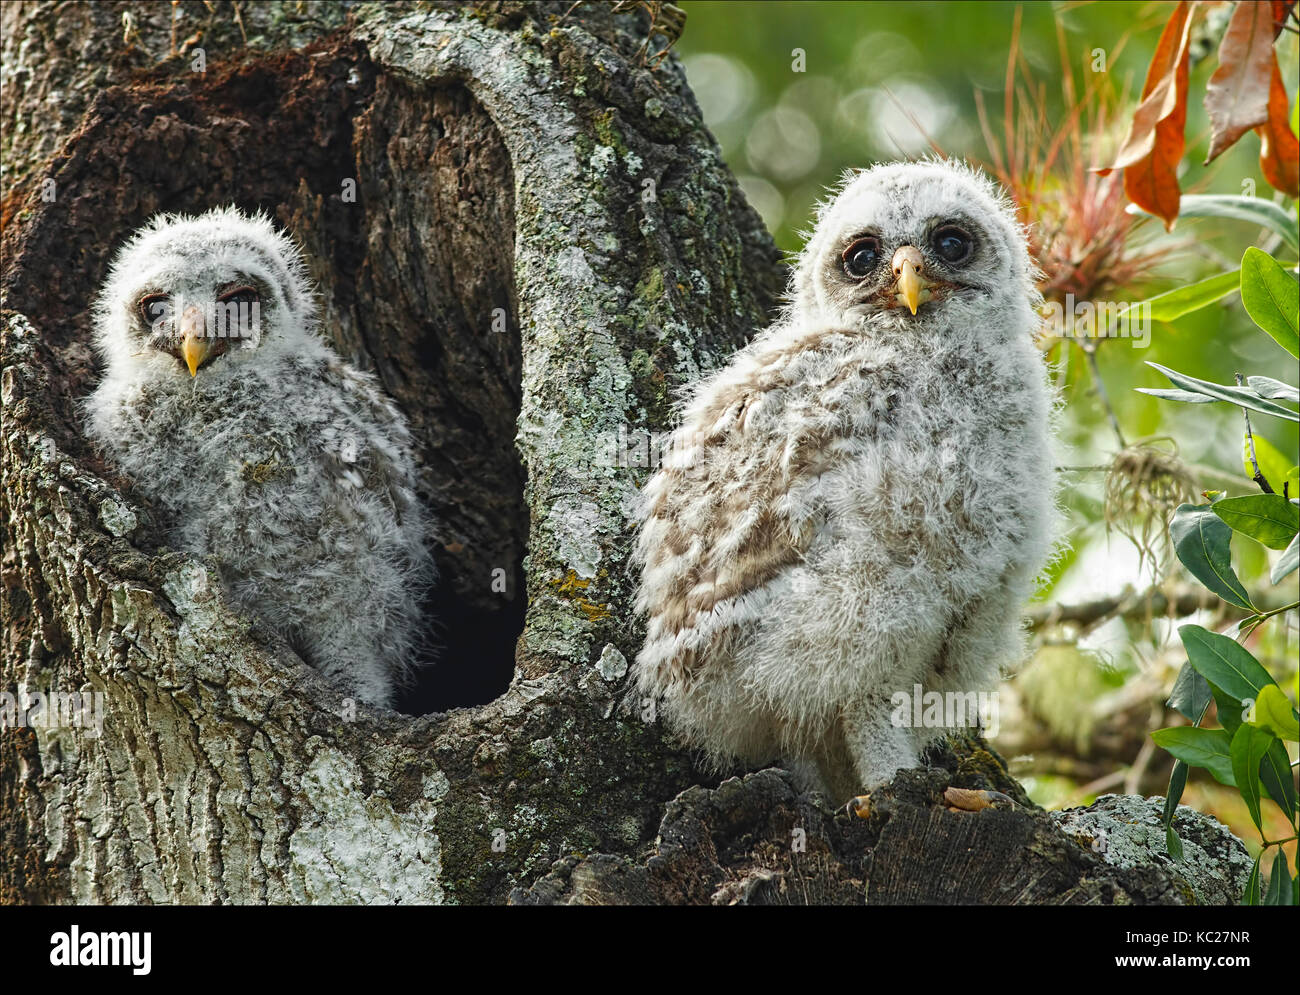 Juvenile Barred Owls emerging from Cavity - Stock Image